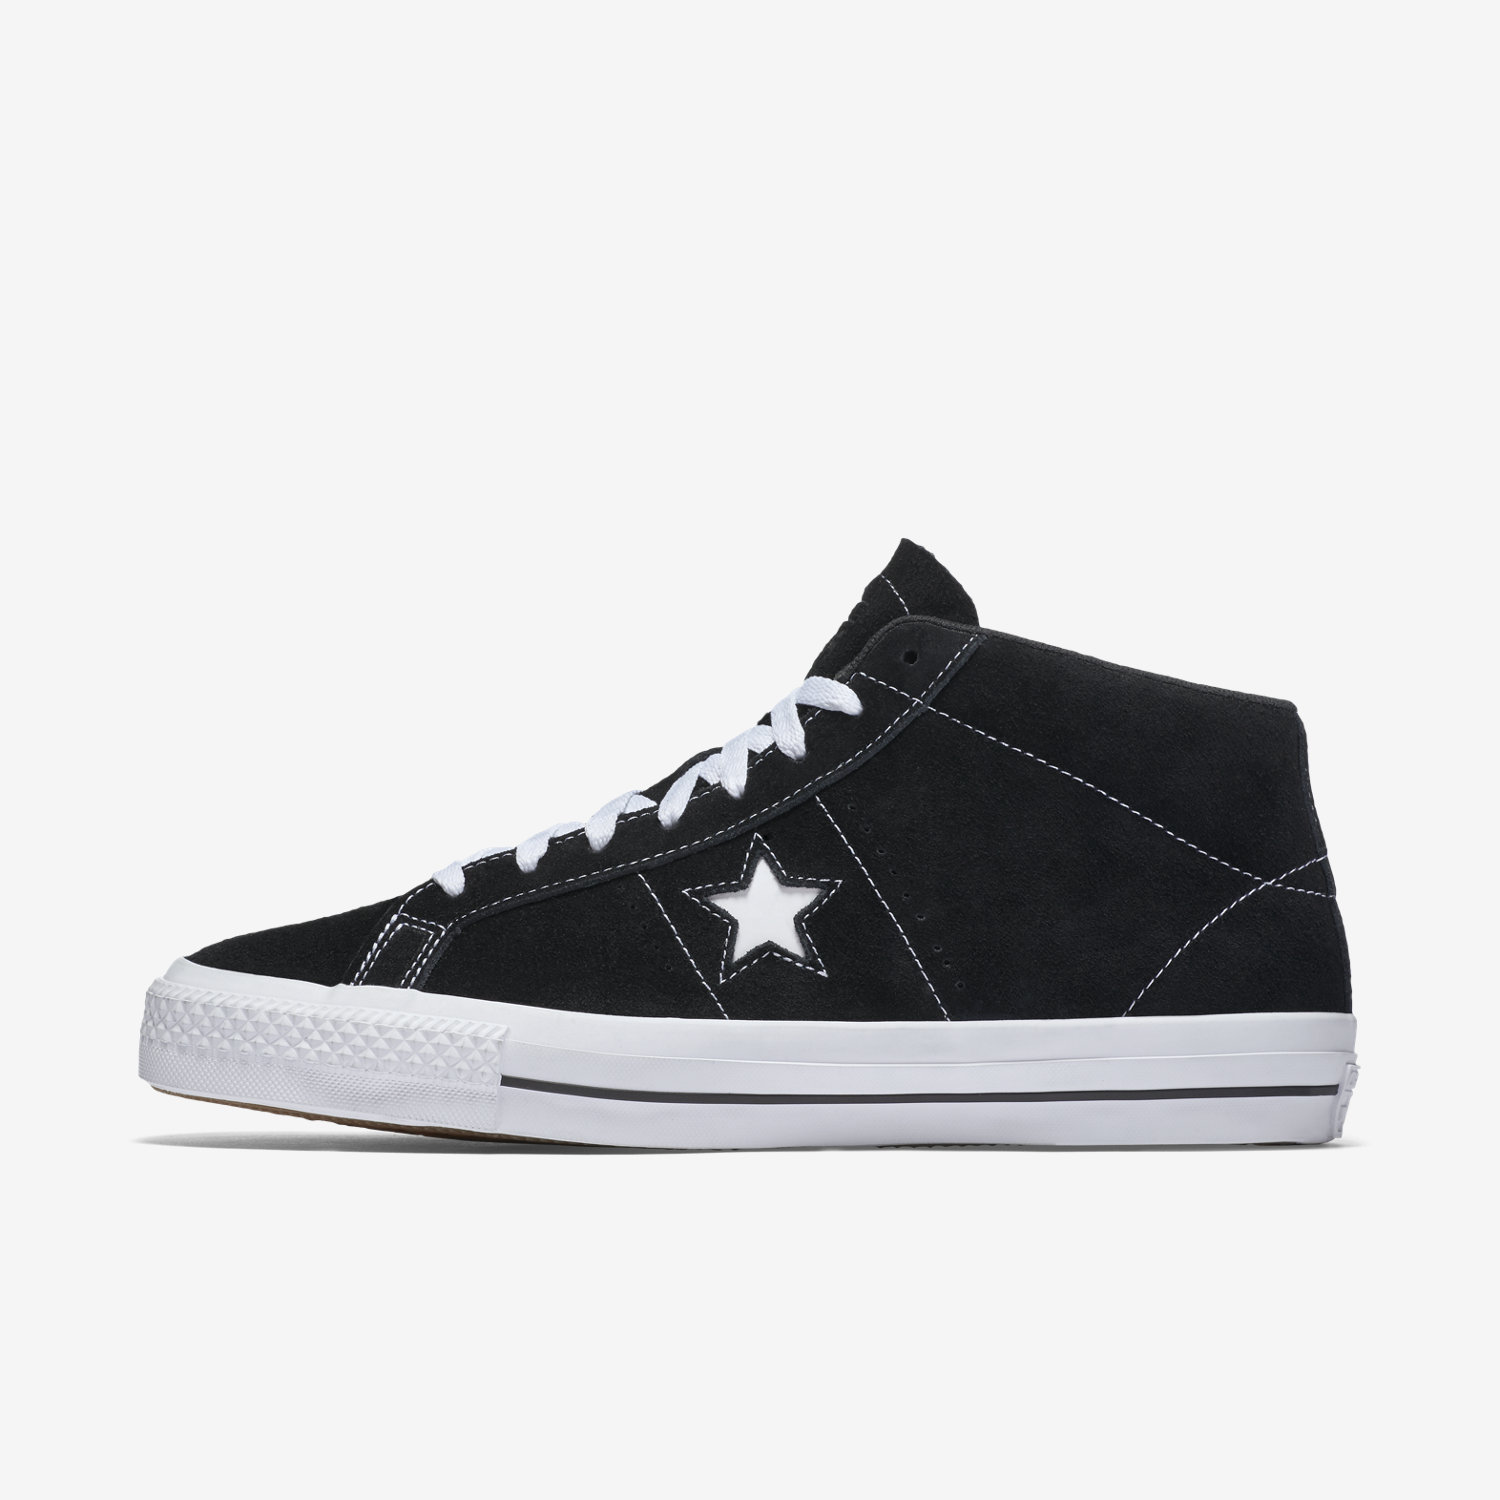 Converse Cons One Star Pro Suede Mid Top Men's Skateboarding Shoe. Nike.com